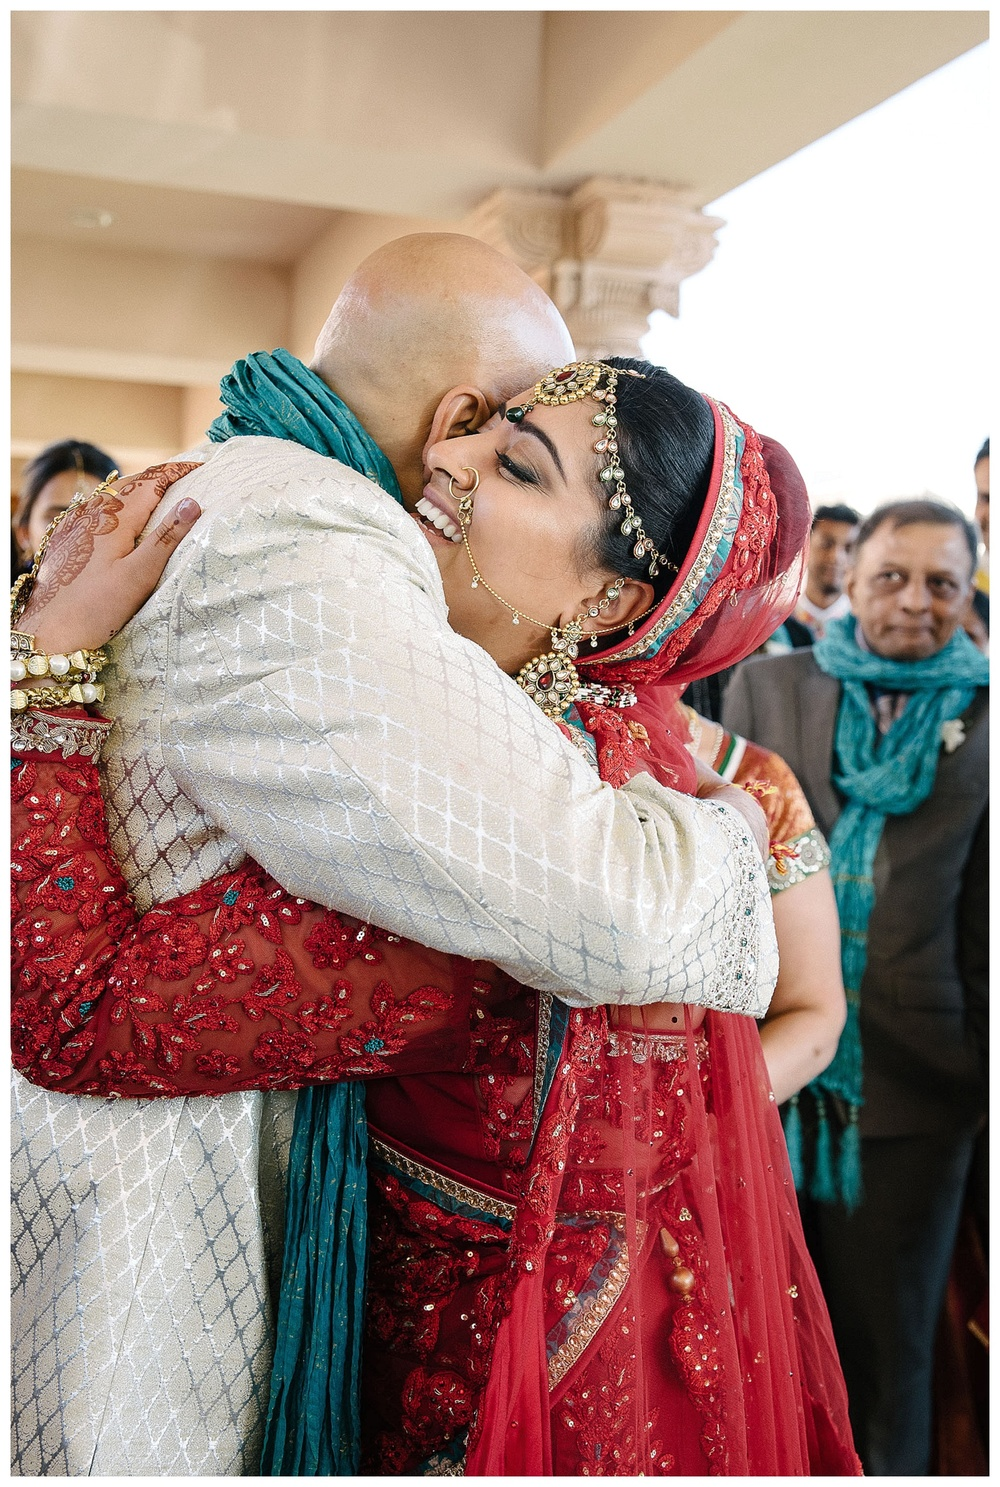 Atlanta BAPS Wedding Photographer-BAPS Indian wedding photos (2330 of 2502).jpg